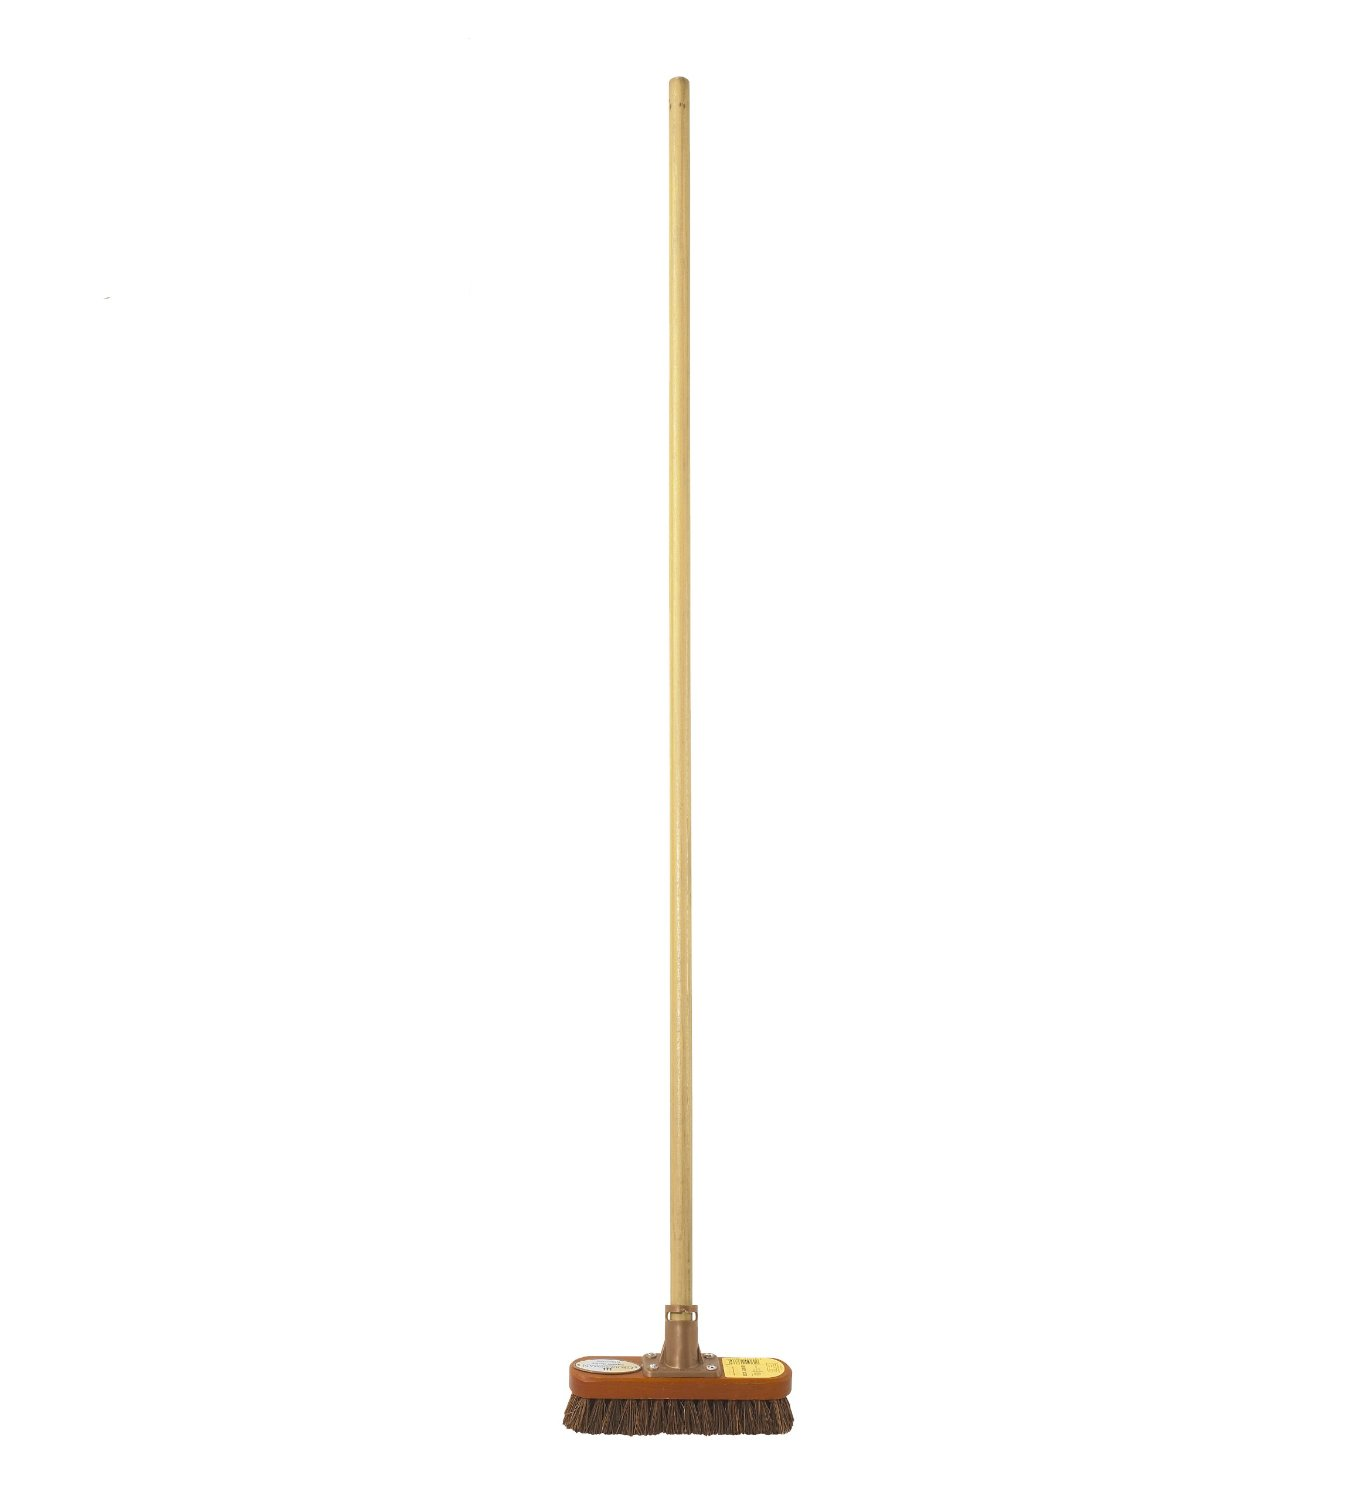 Groundsman 9-Inch Deck Scrub with Handle